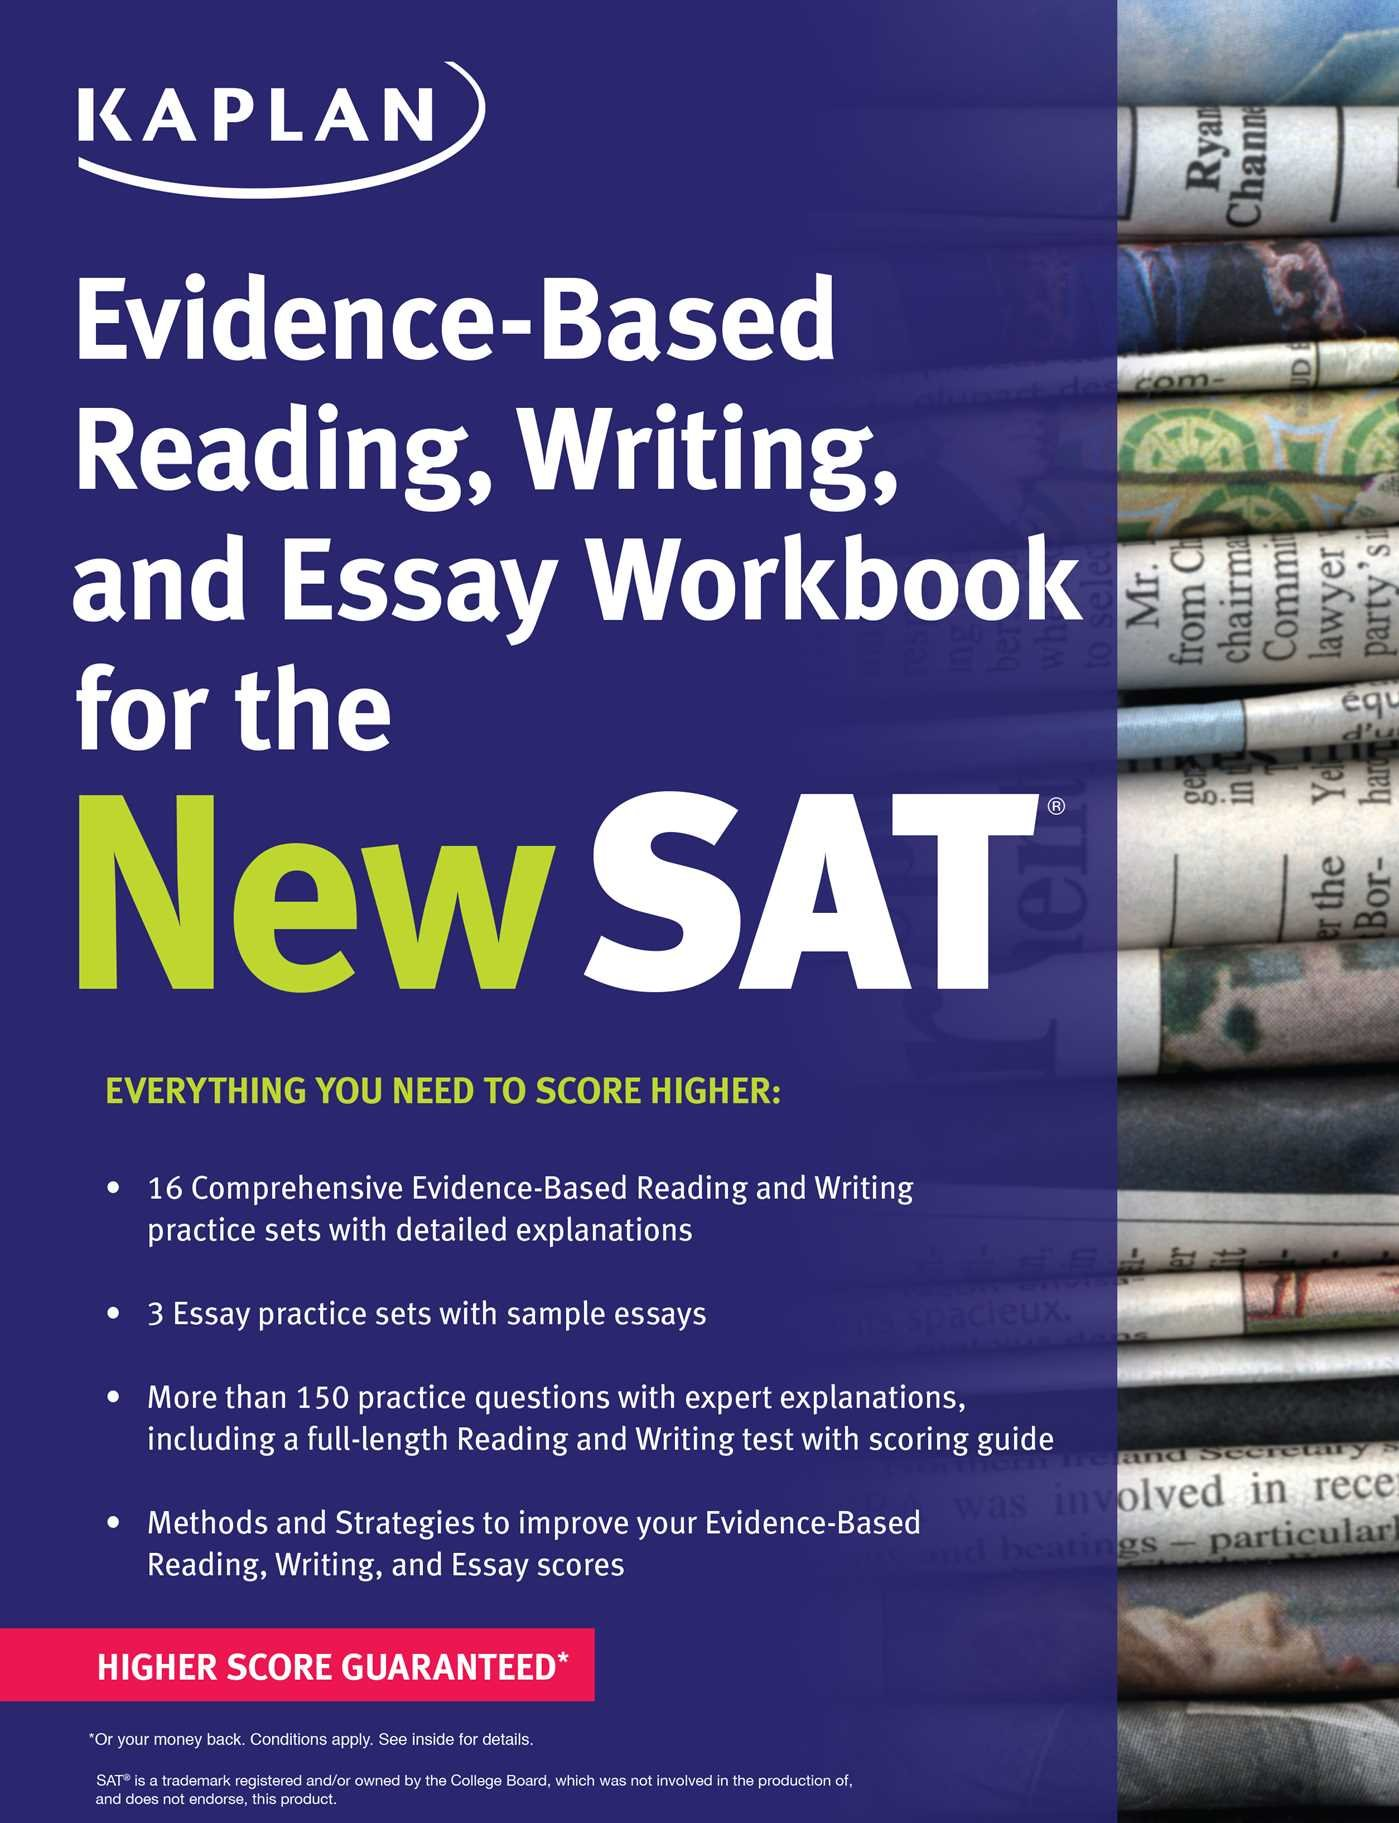 Kaplan Evidence-Based Reading, Writing, and Essay Workbook for the New SAT (Kaplan Test Prep) by Kaplan Publishing